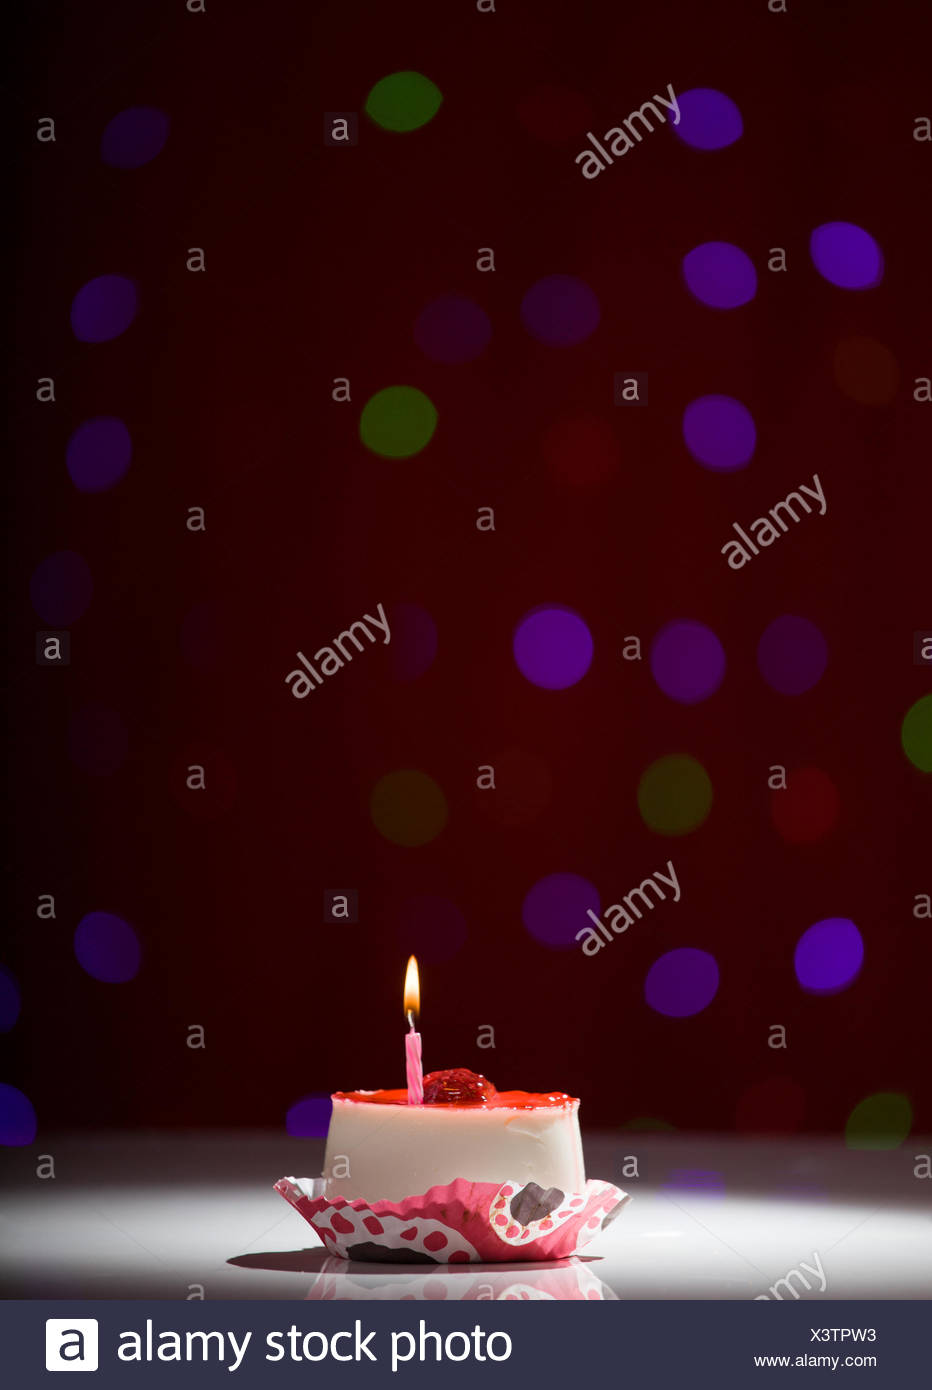 Prime Happy Birthday Cake Shot On A Red Blurred Background With Candle Funny Birthday Cards Online Fluifree Goldxyz